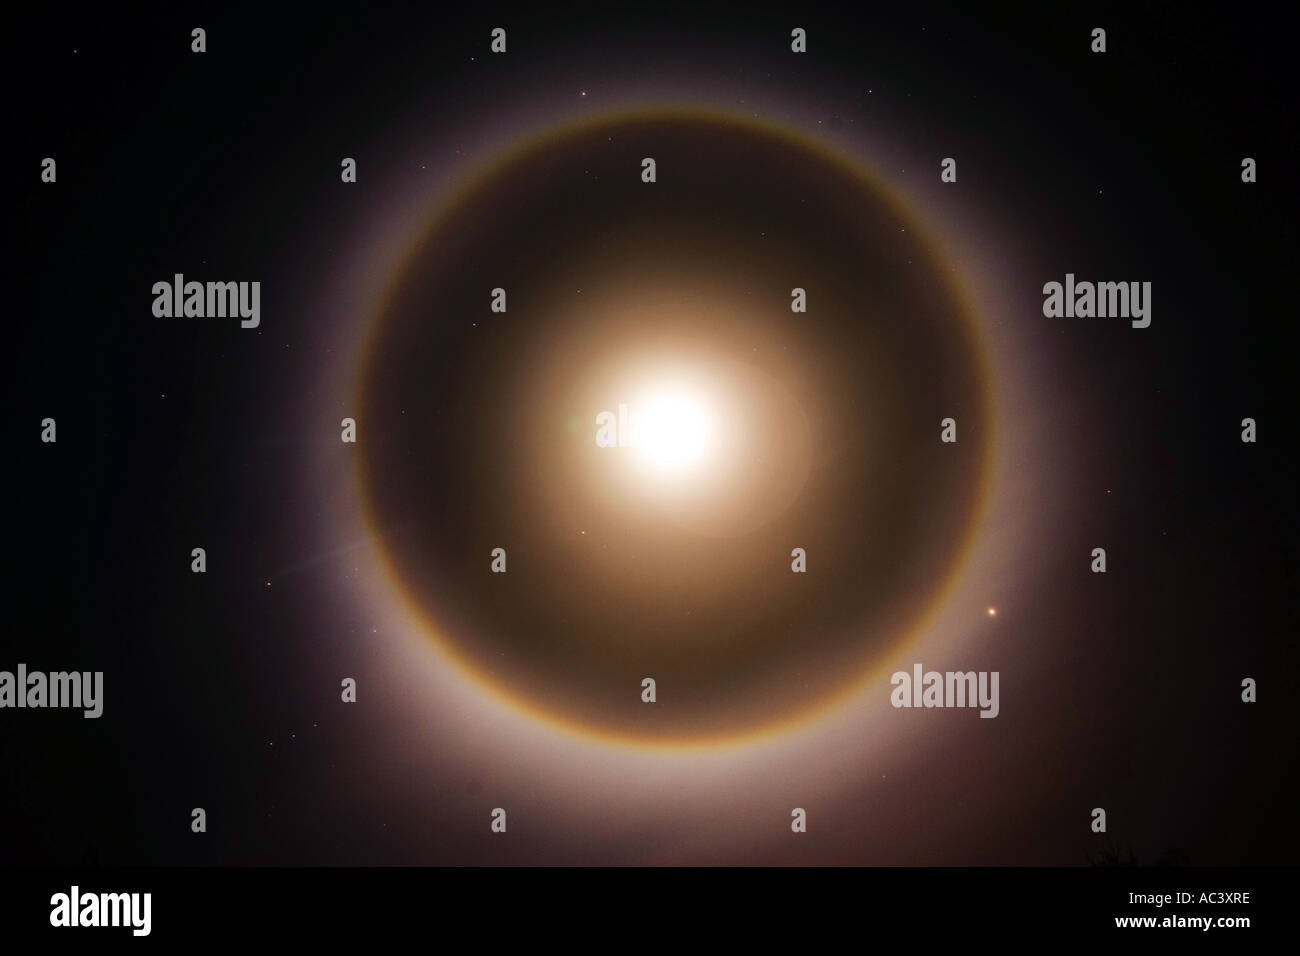 a halo of light around the moon caused by ice crystals in high cirrus clouds - Stock Image